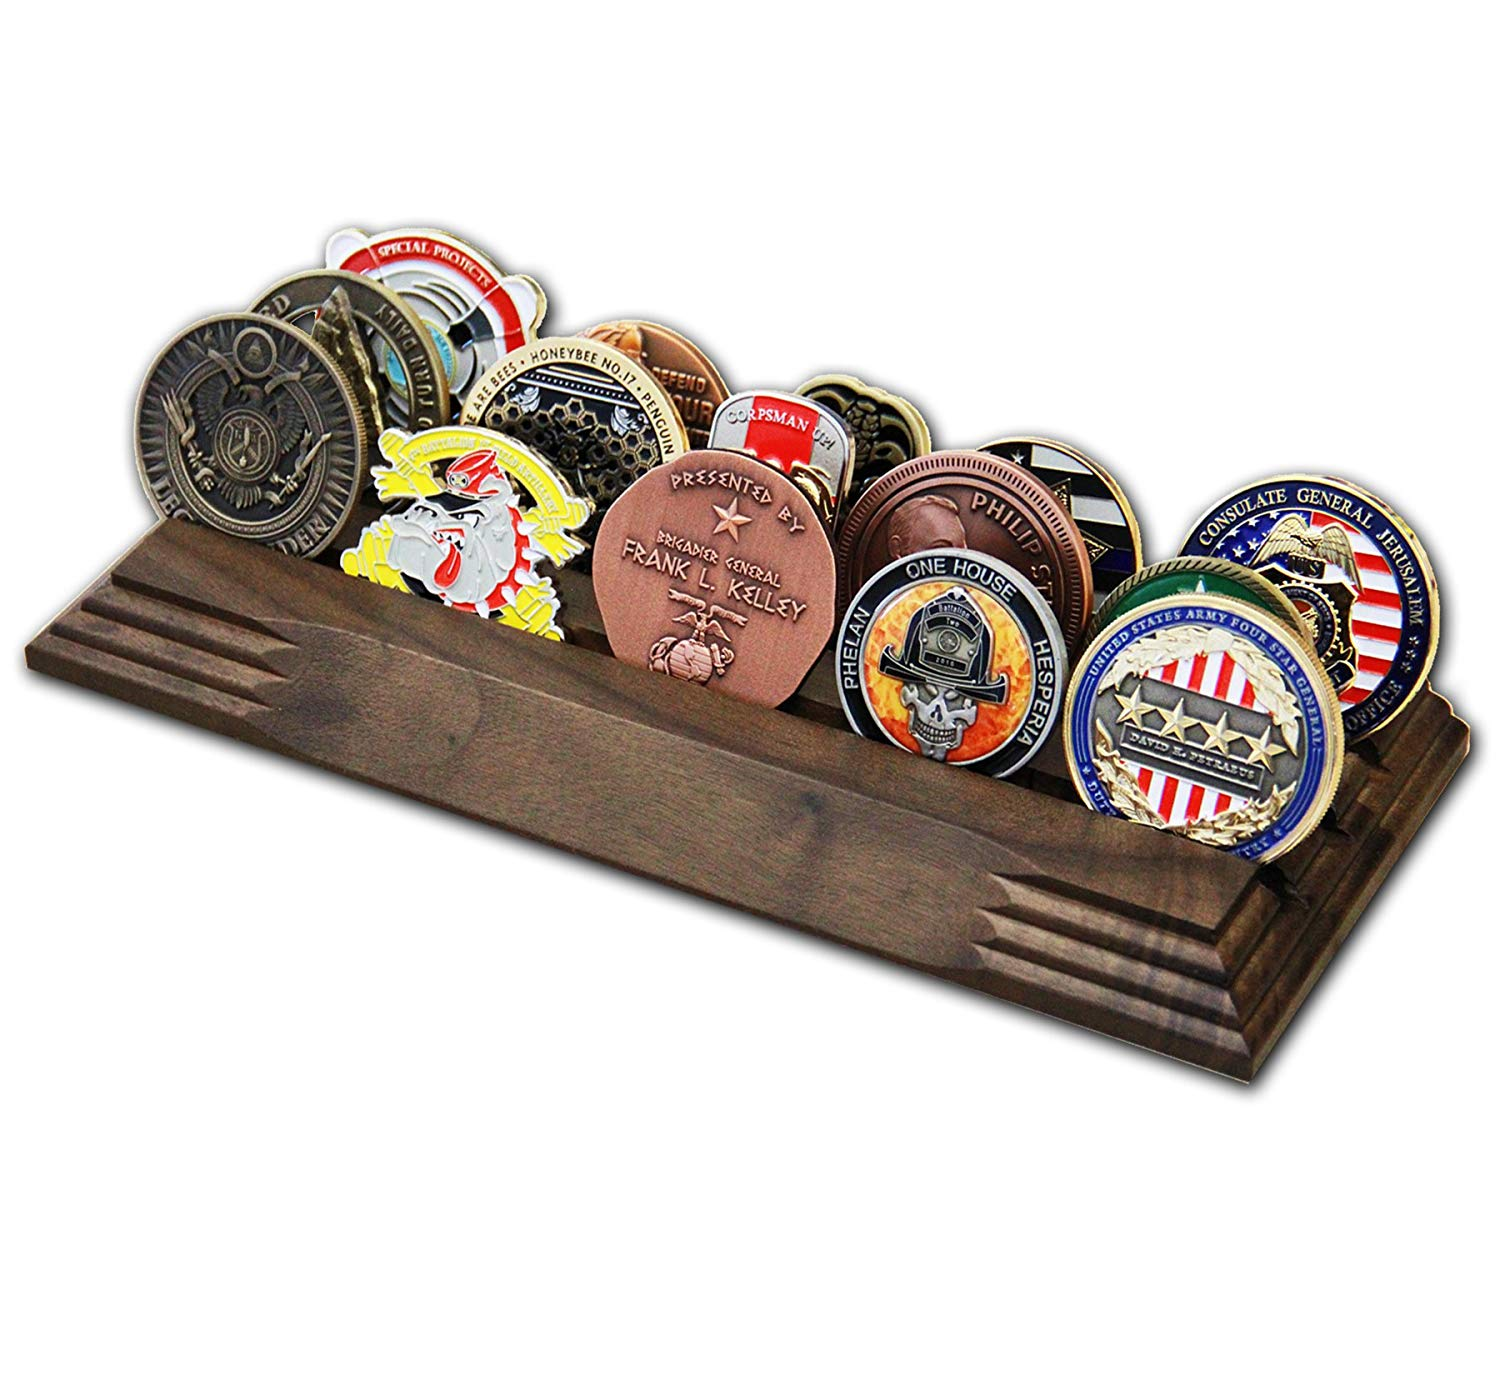 Toys & Games Hobbies 4 Row Challenge Coin Holder Military Coin ...